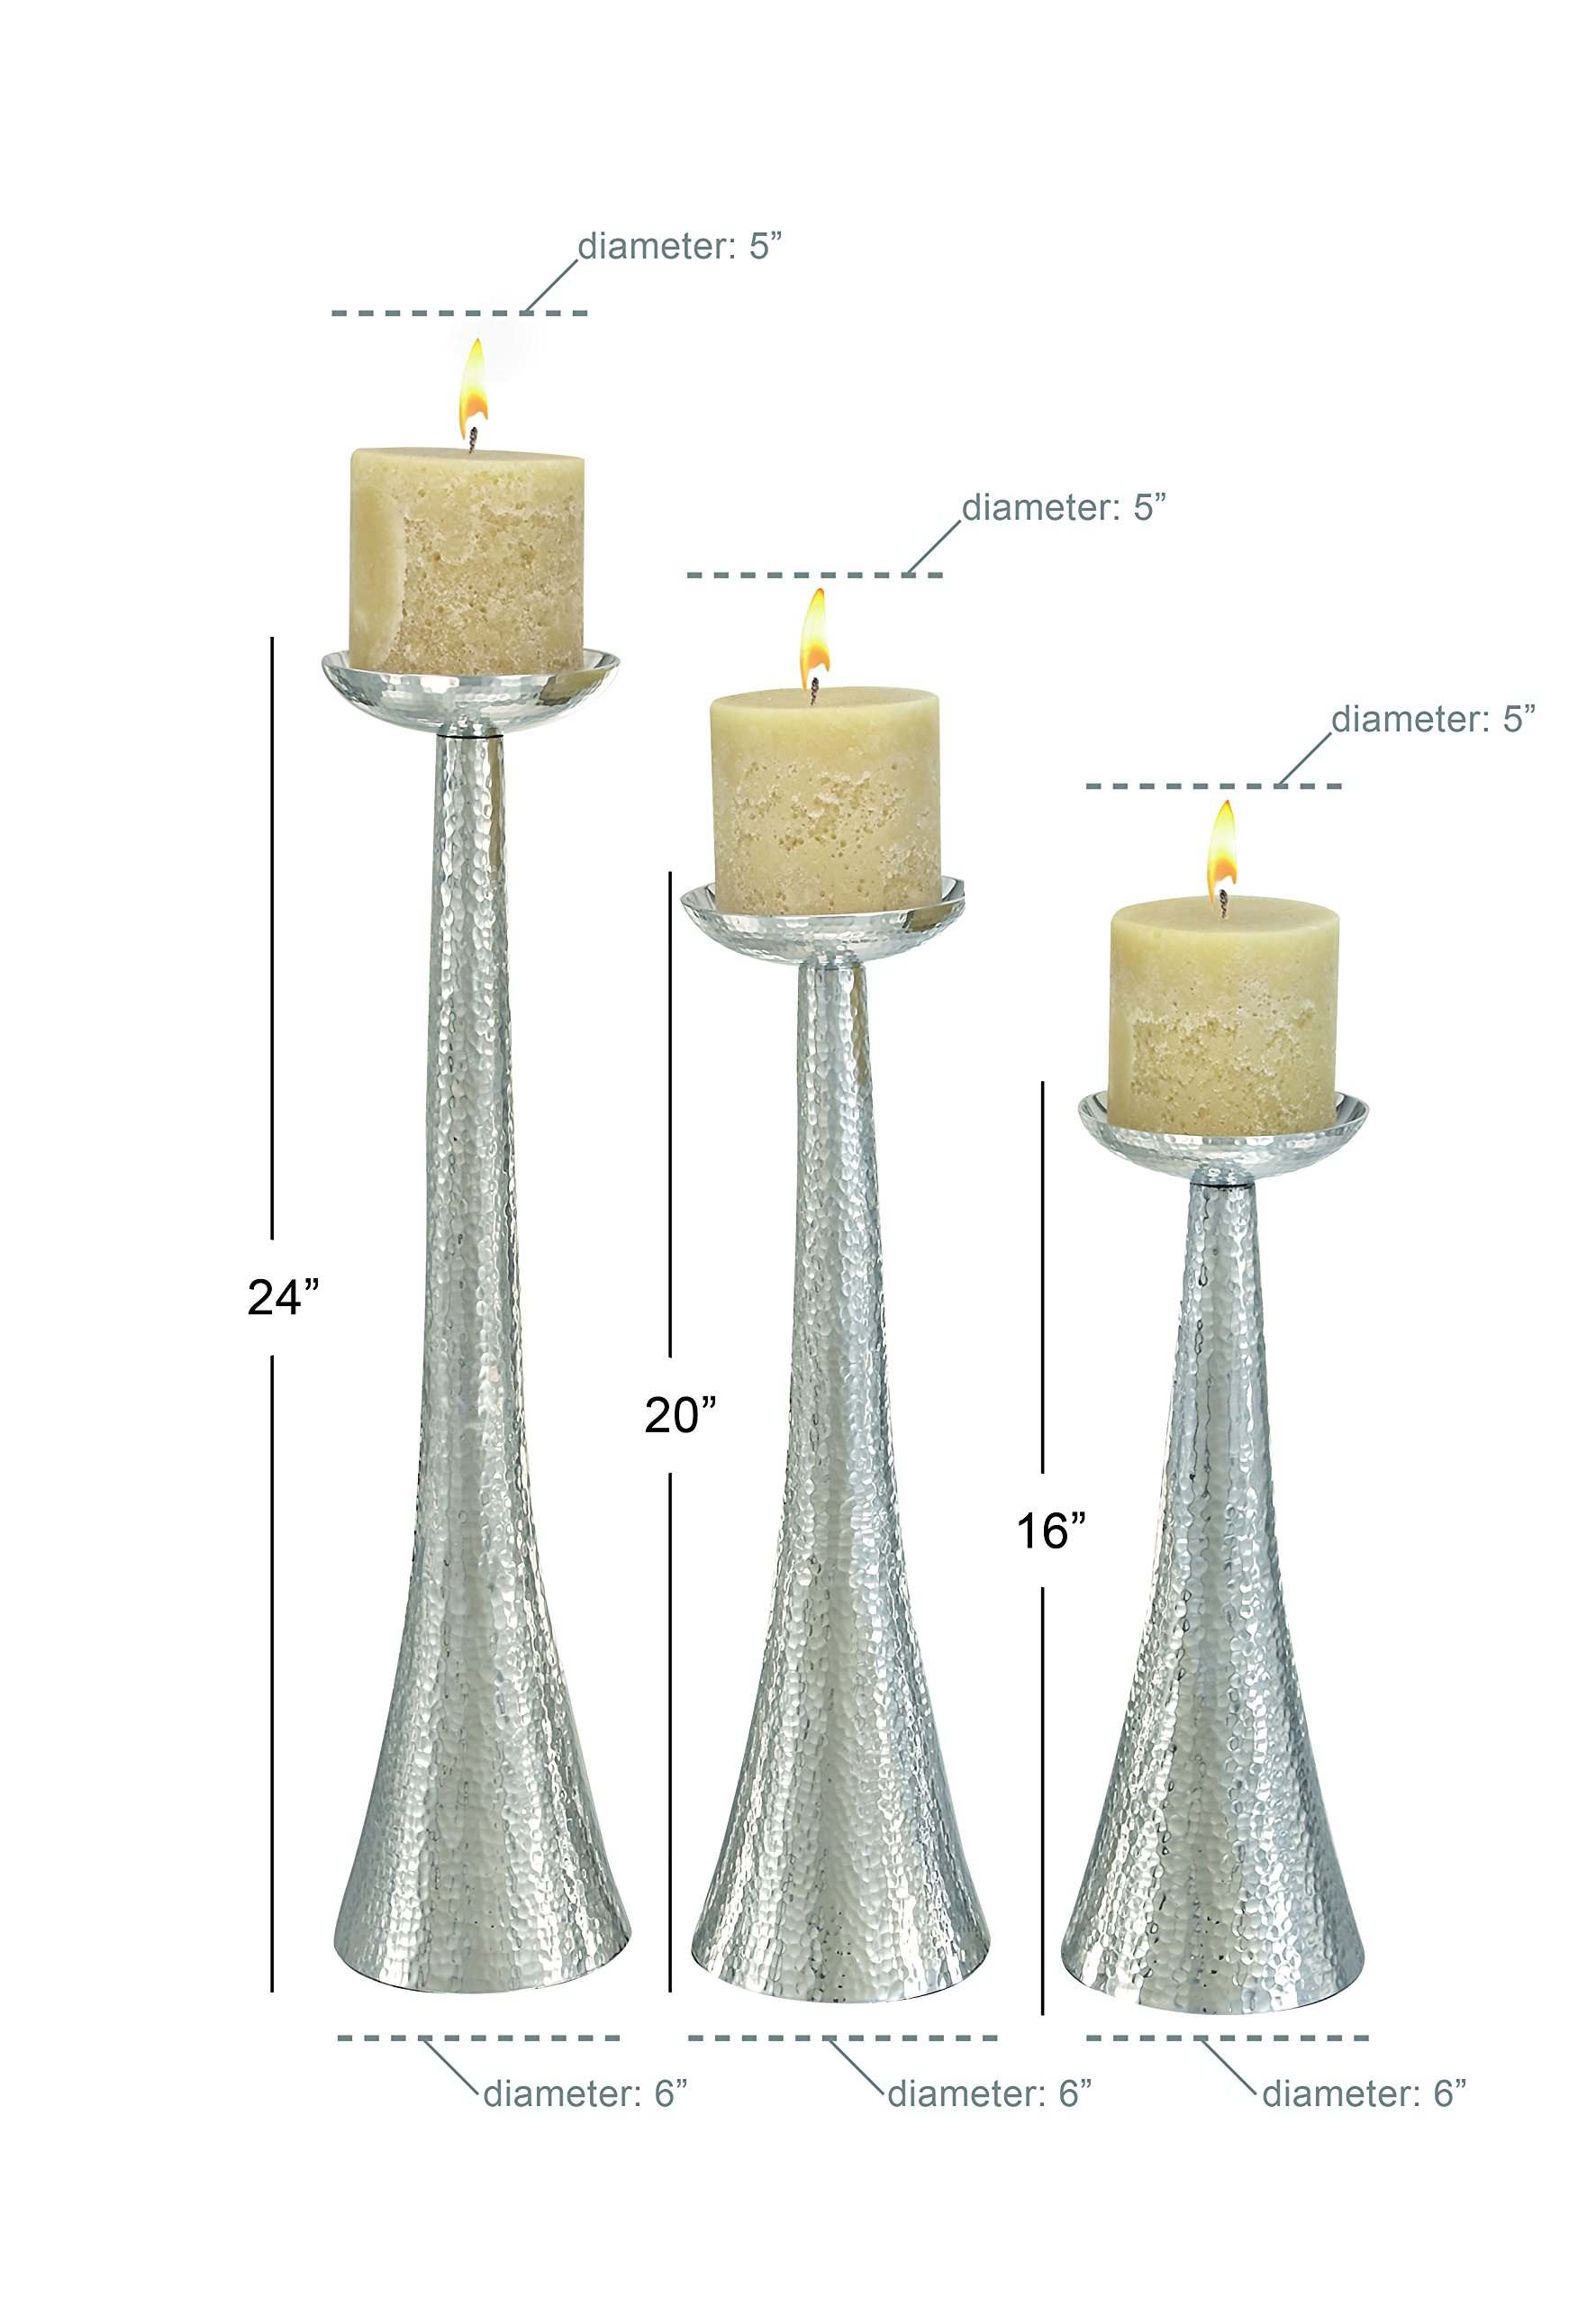 Deco 79 Aluminium Candle Holder, 23 by 20 by 16-Inch, Set of 3 by Deco 79 (Image #3)